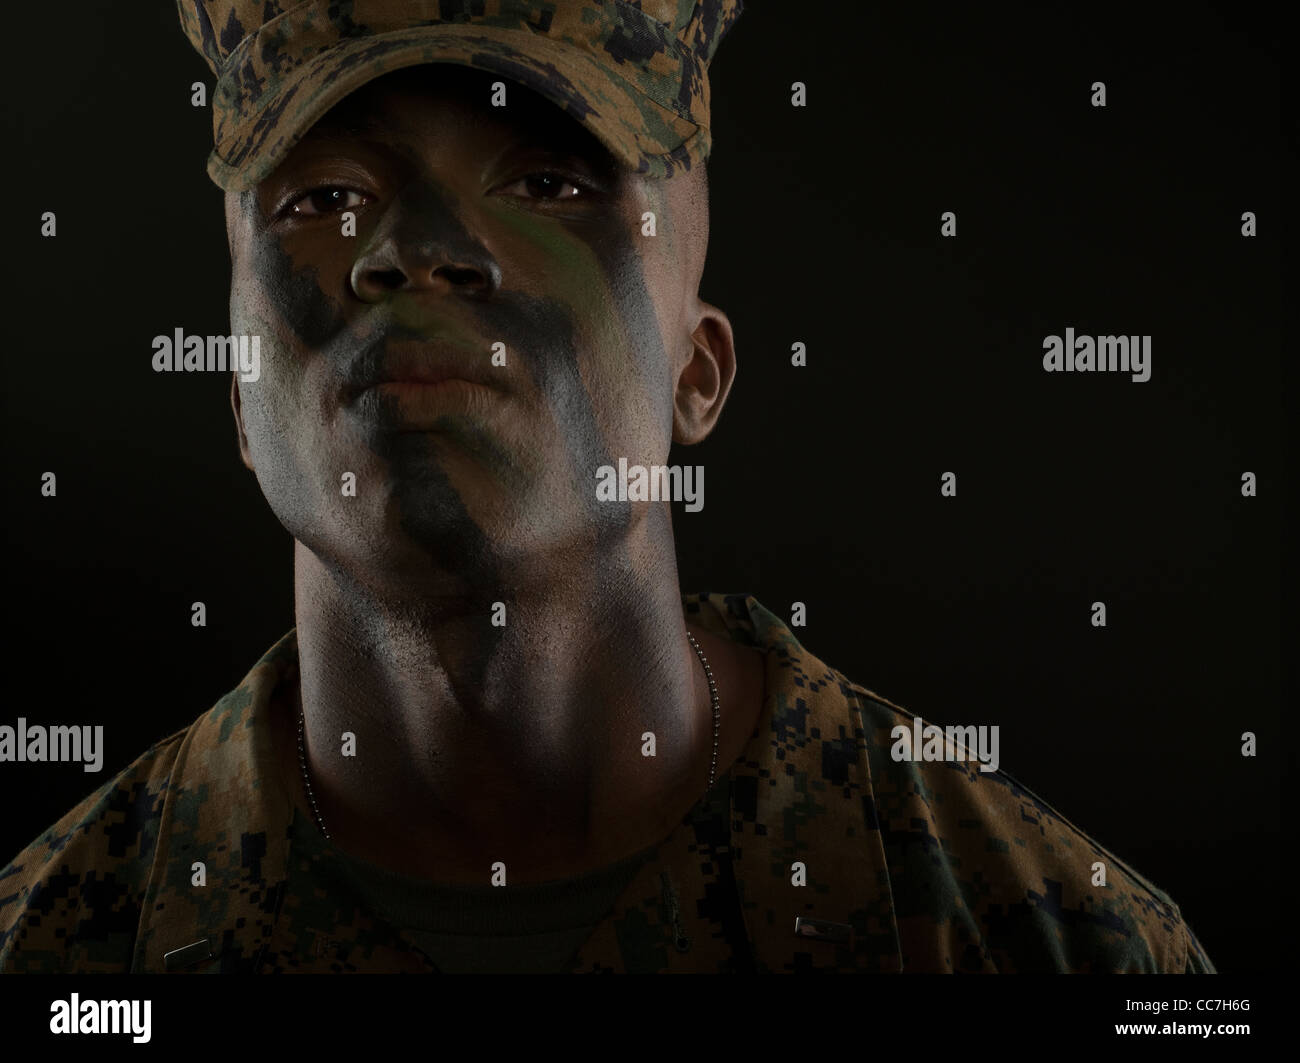 United States Marine Corps Officer in MARPAT digital camouflage uniform and camo face paint - Stock Image